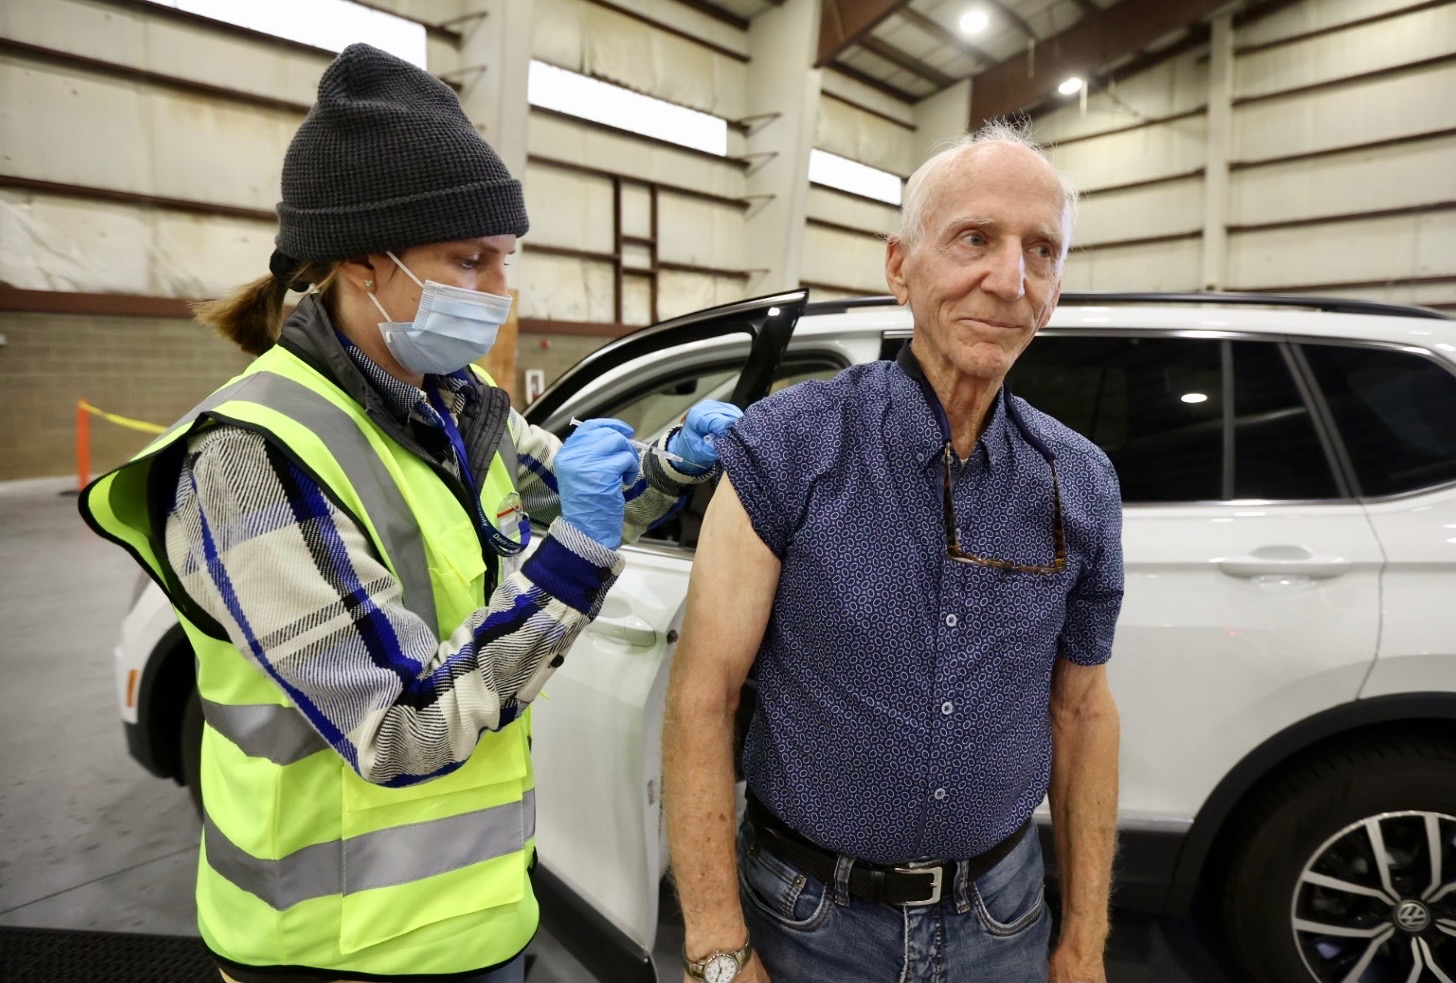 Kelsey Wetzel, a registered nurse with Davis County Community Health, gives a COVID-19 vaccine booster shot to William Boren.